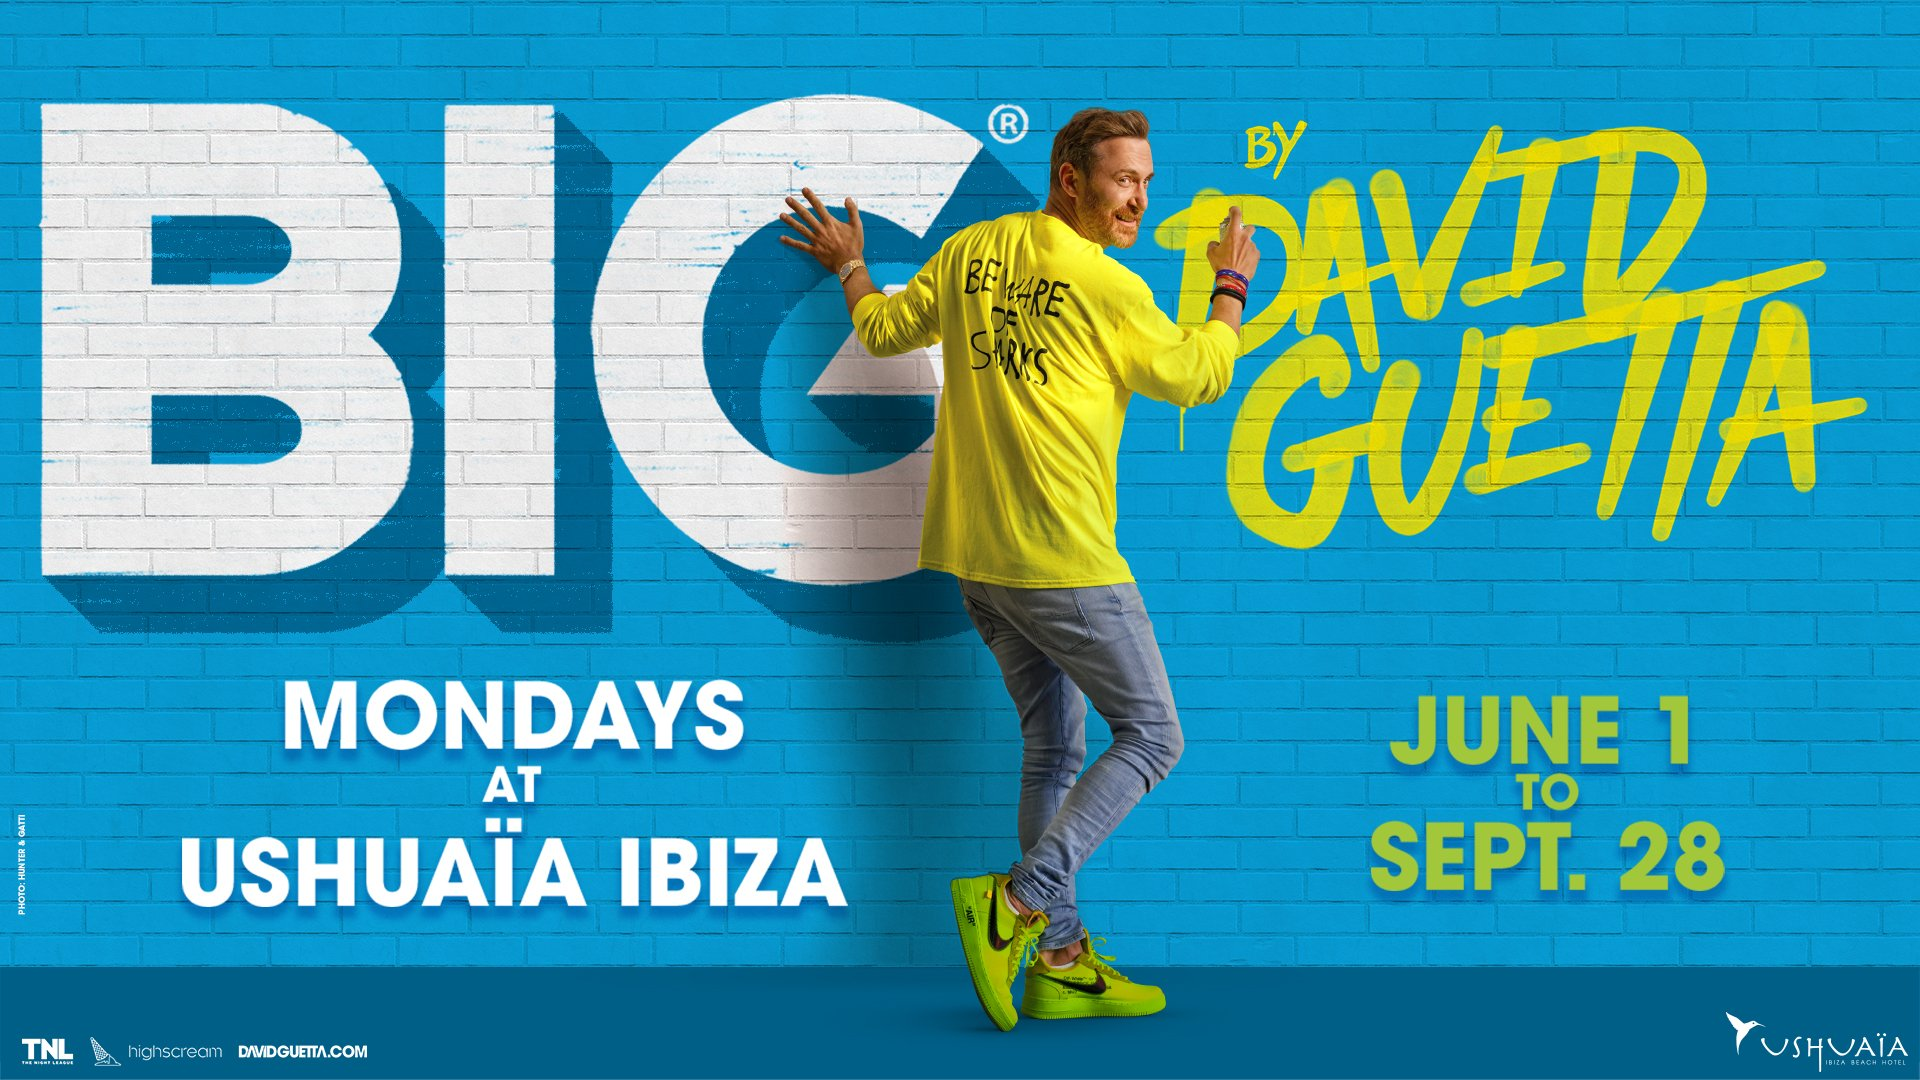 BIG by David Guetta returns to Ushuaïa Ibiza for 2020